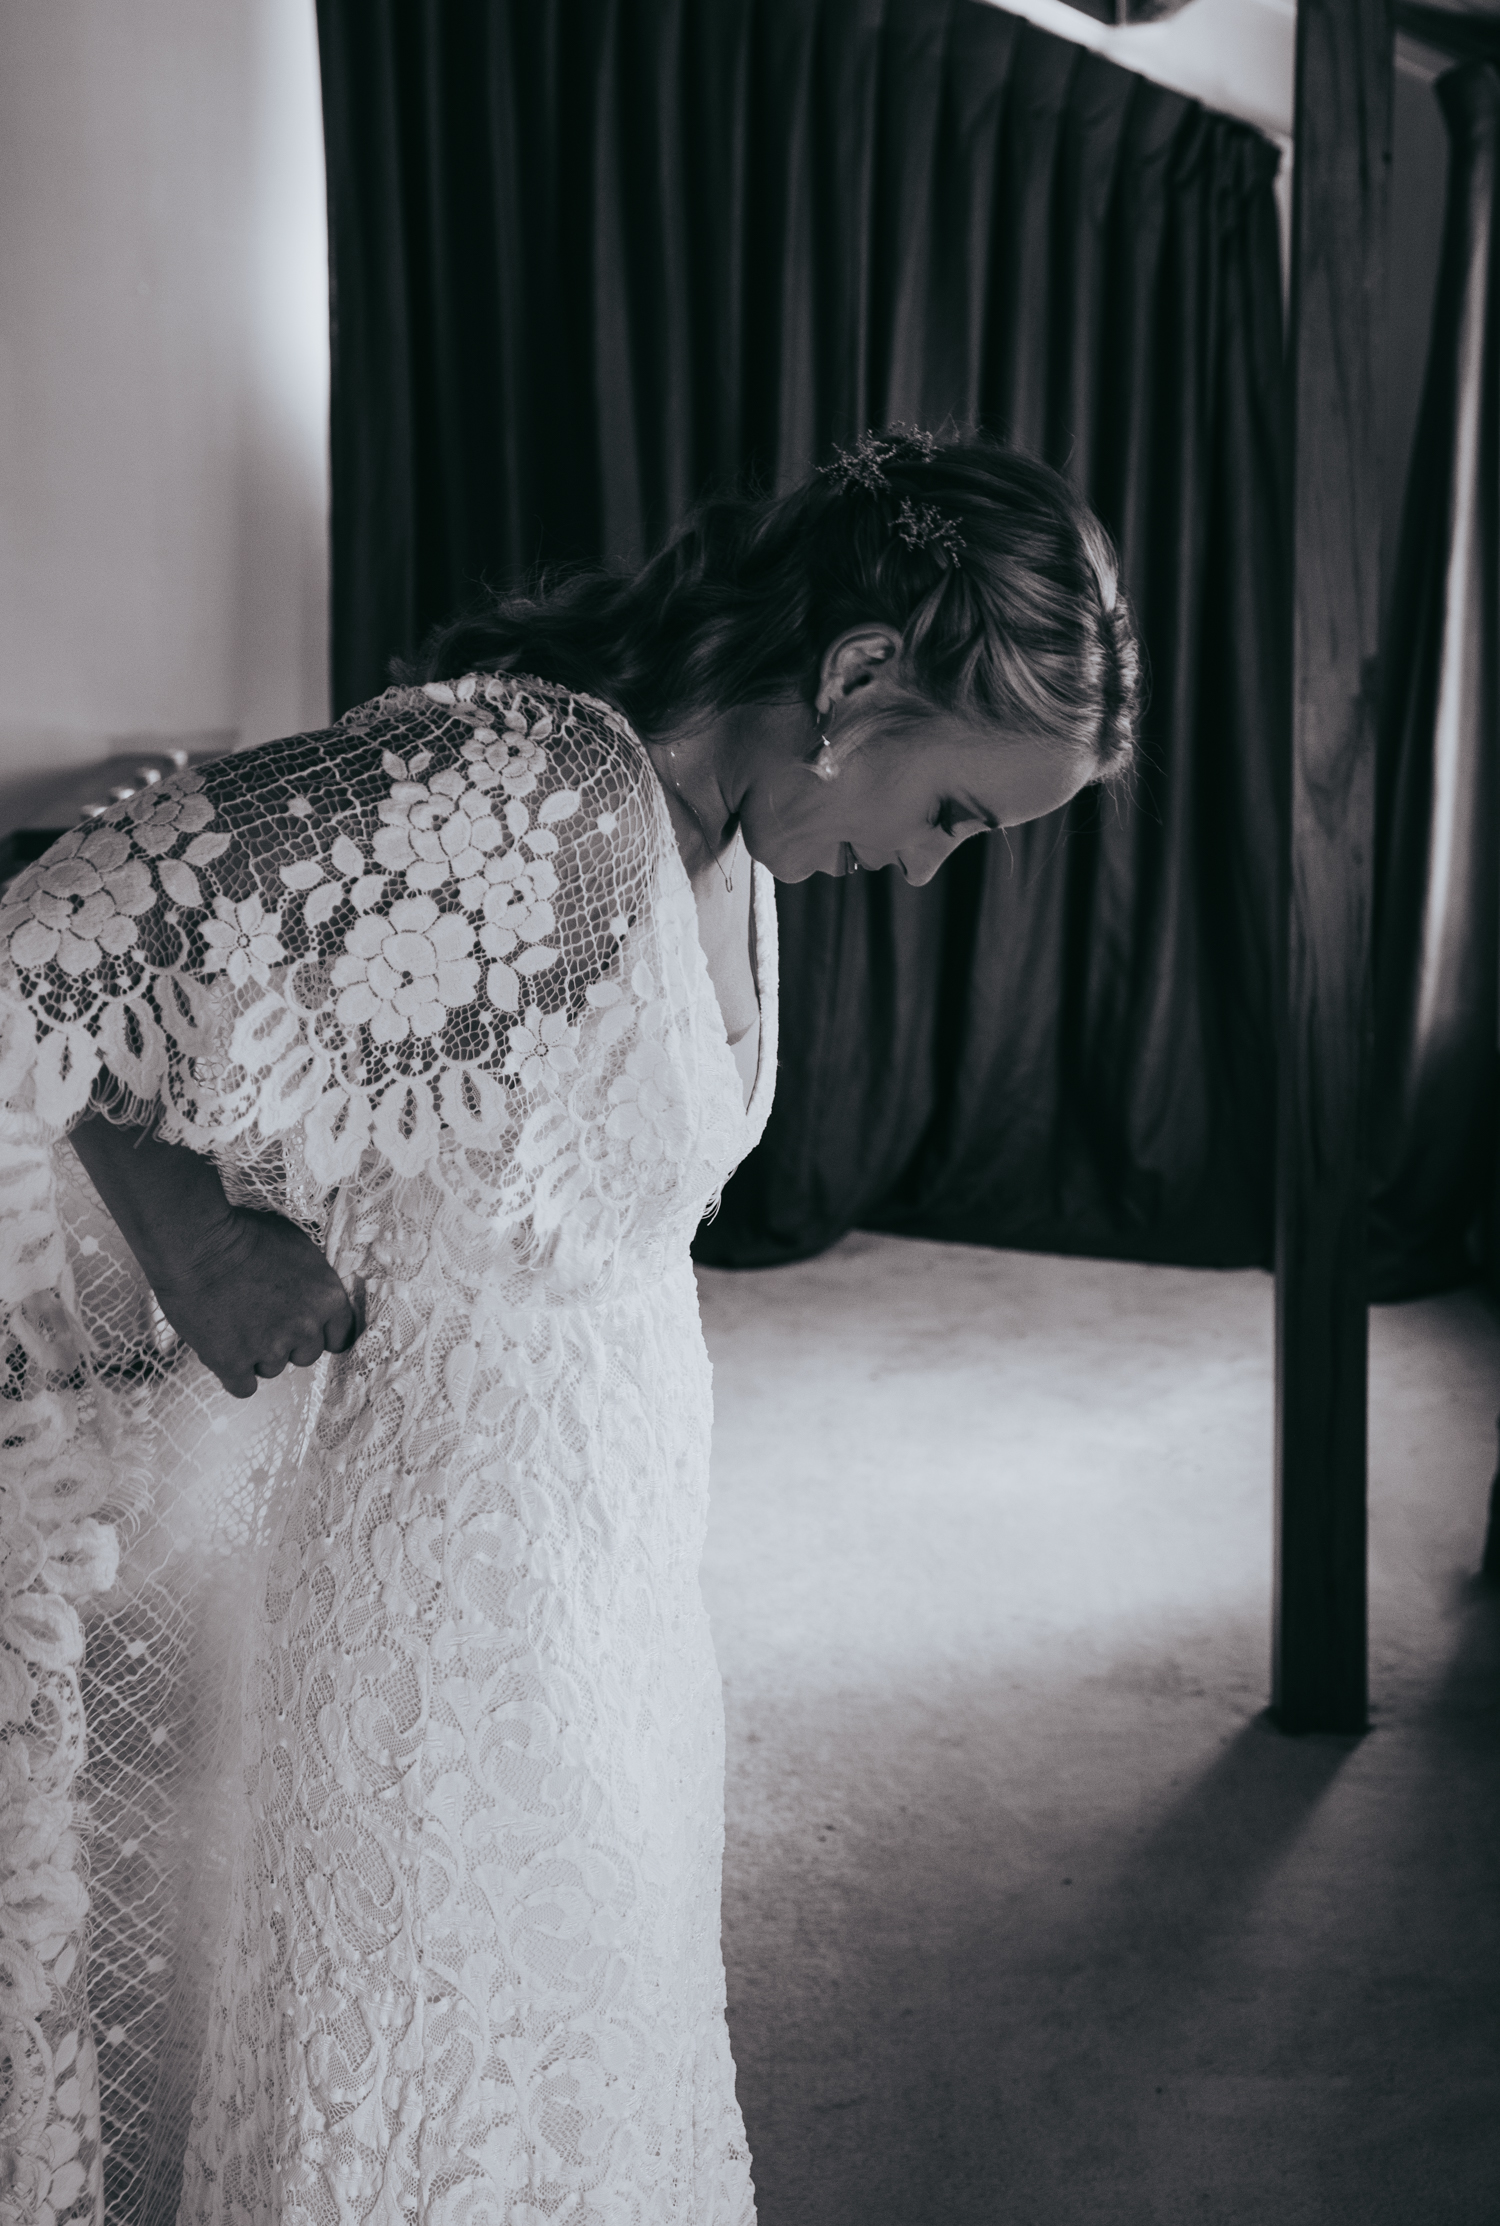 waikato-new-zealand-wedding-photographer-summer-rural-wedding-grace-loves-lace-dress.jpg